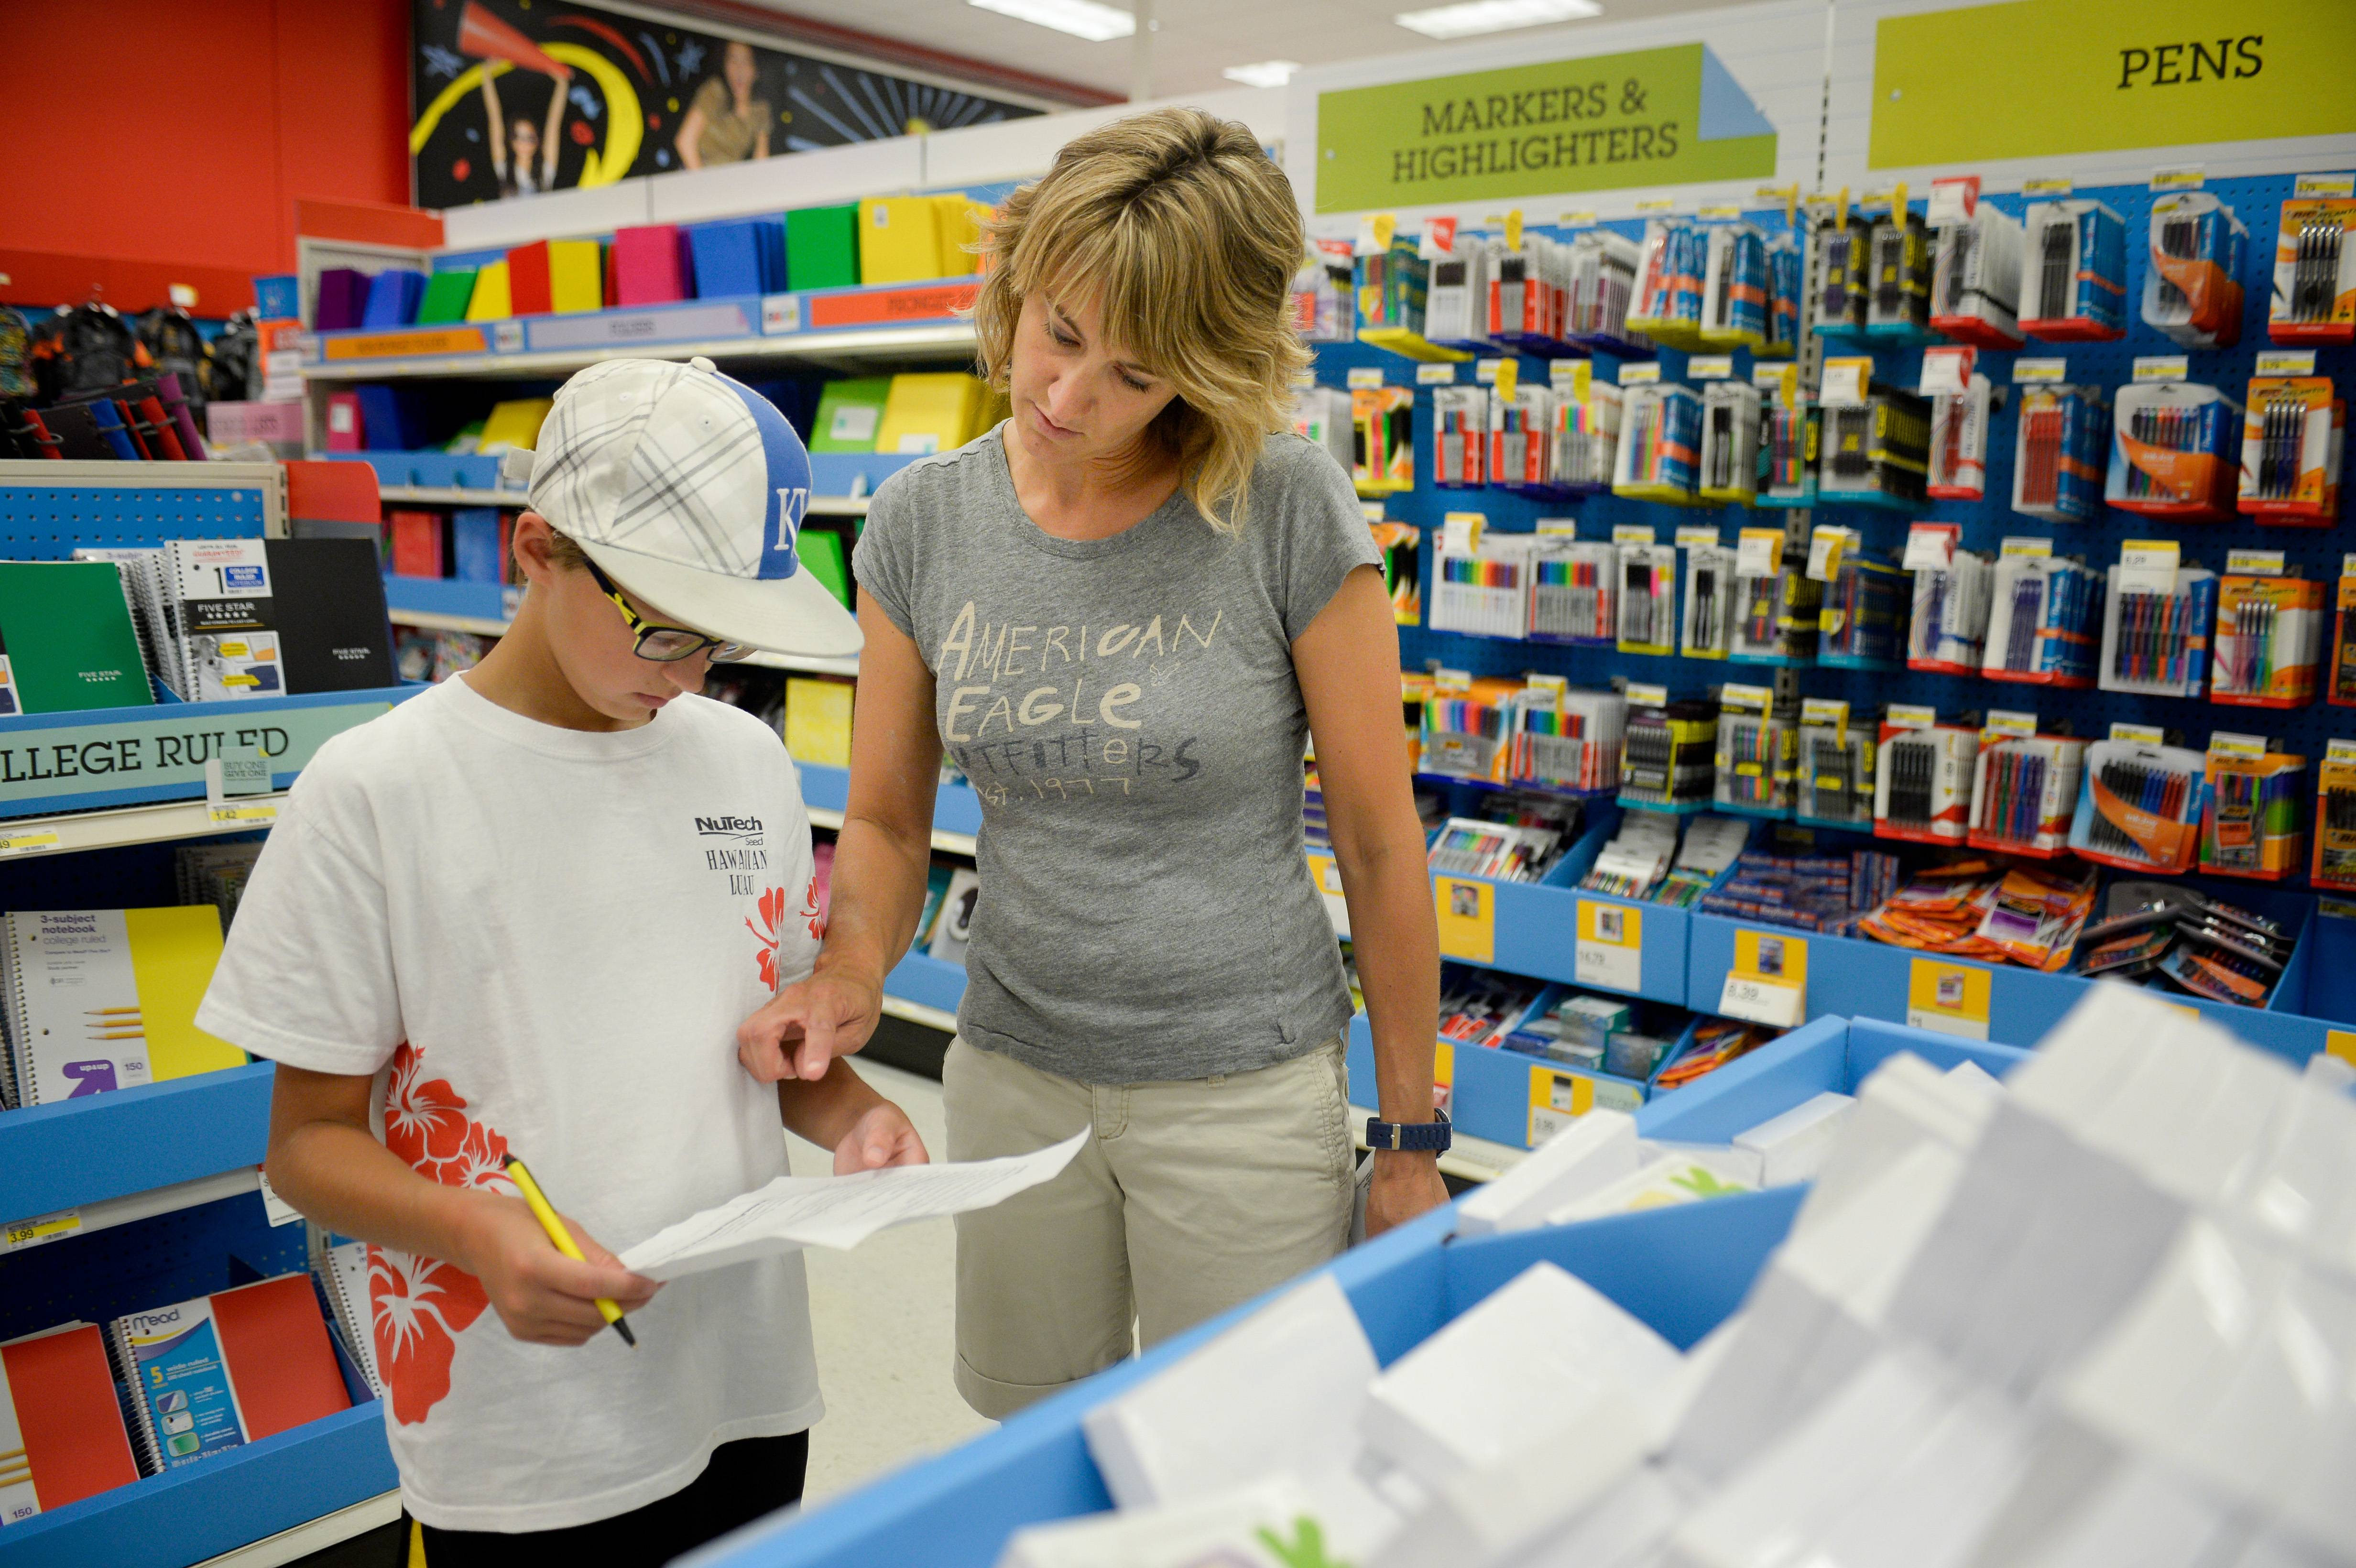 Jill Courtney, right, shops for school supplies for her sons, Will, left, and Reid, not seen, at a Target store in St. Joseph, Mo.